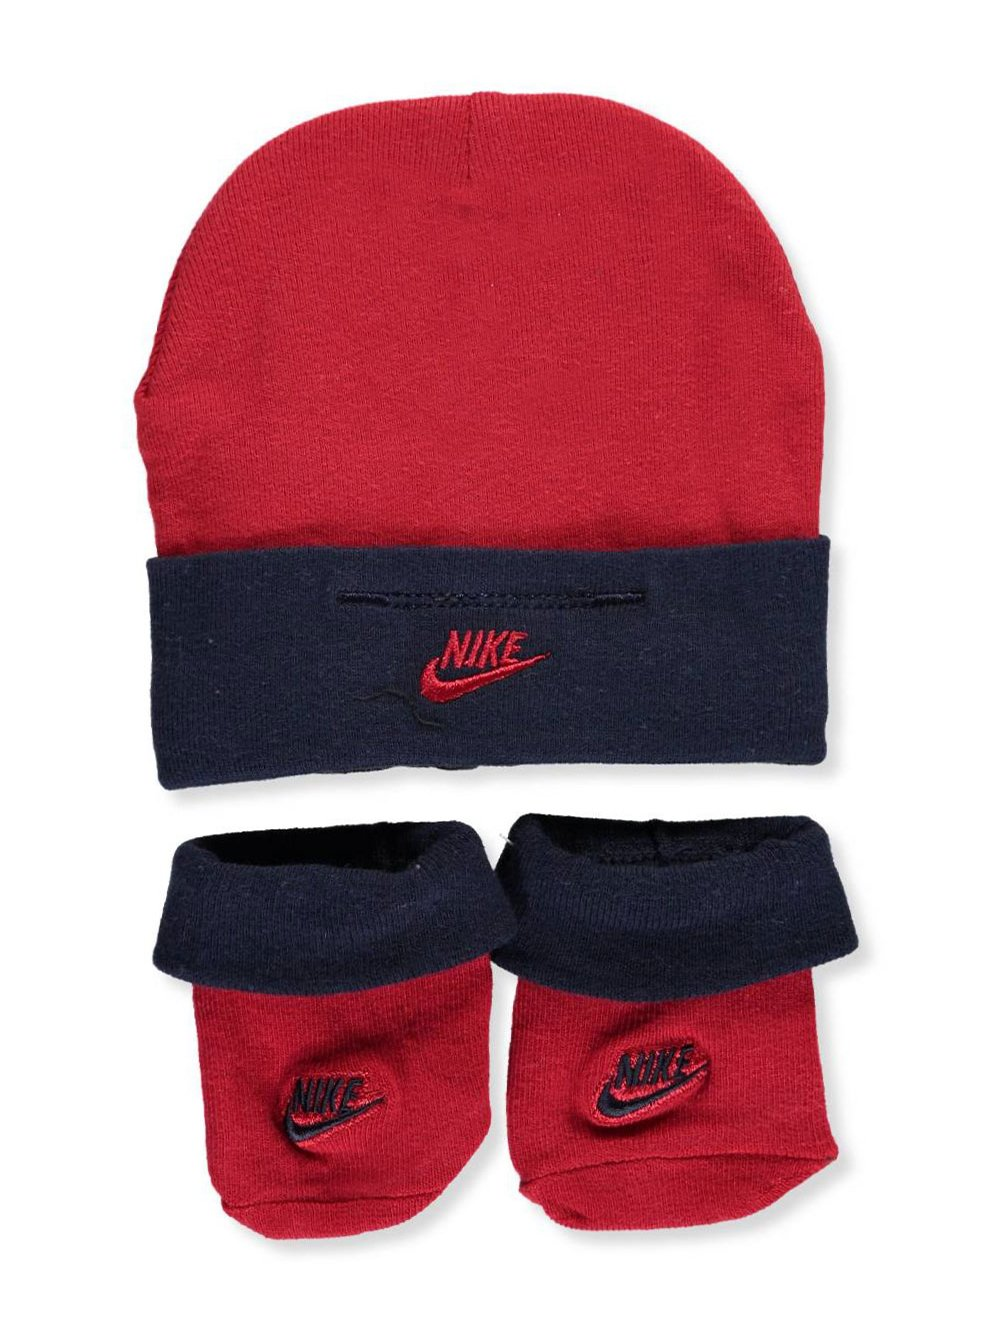 Nike Baby Boys' Infant Hat & Booties - red/navy, 0 - 6 months by Nike